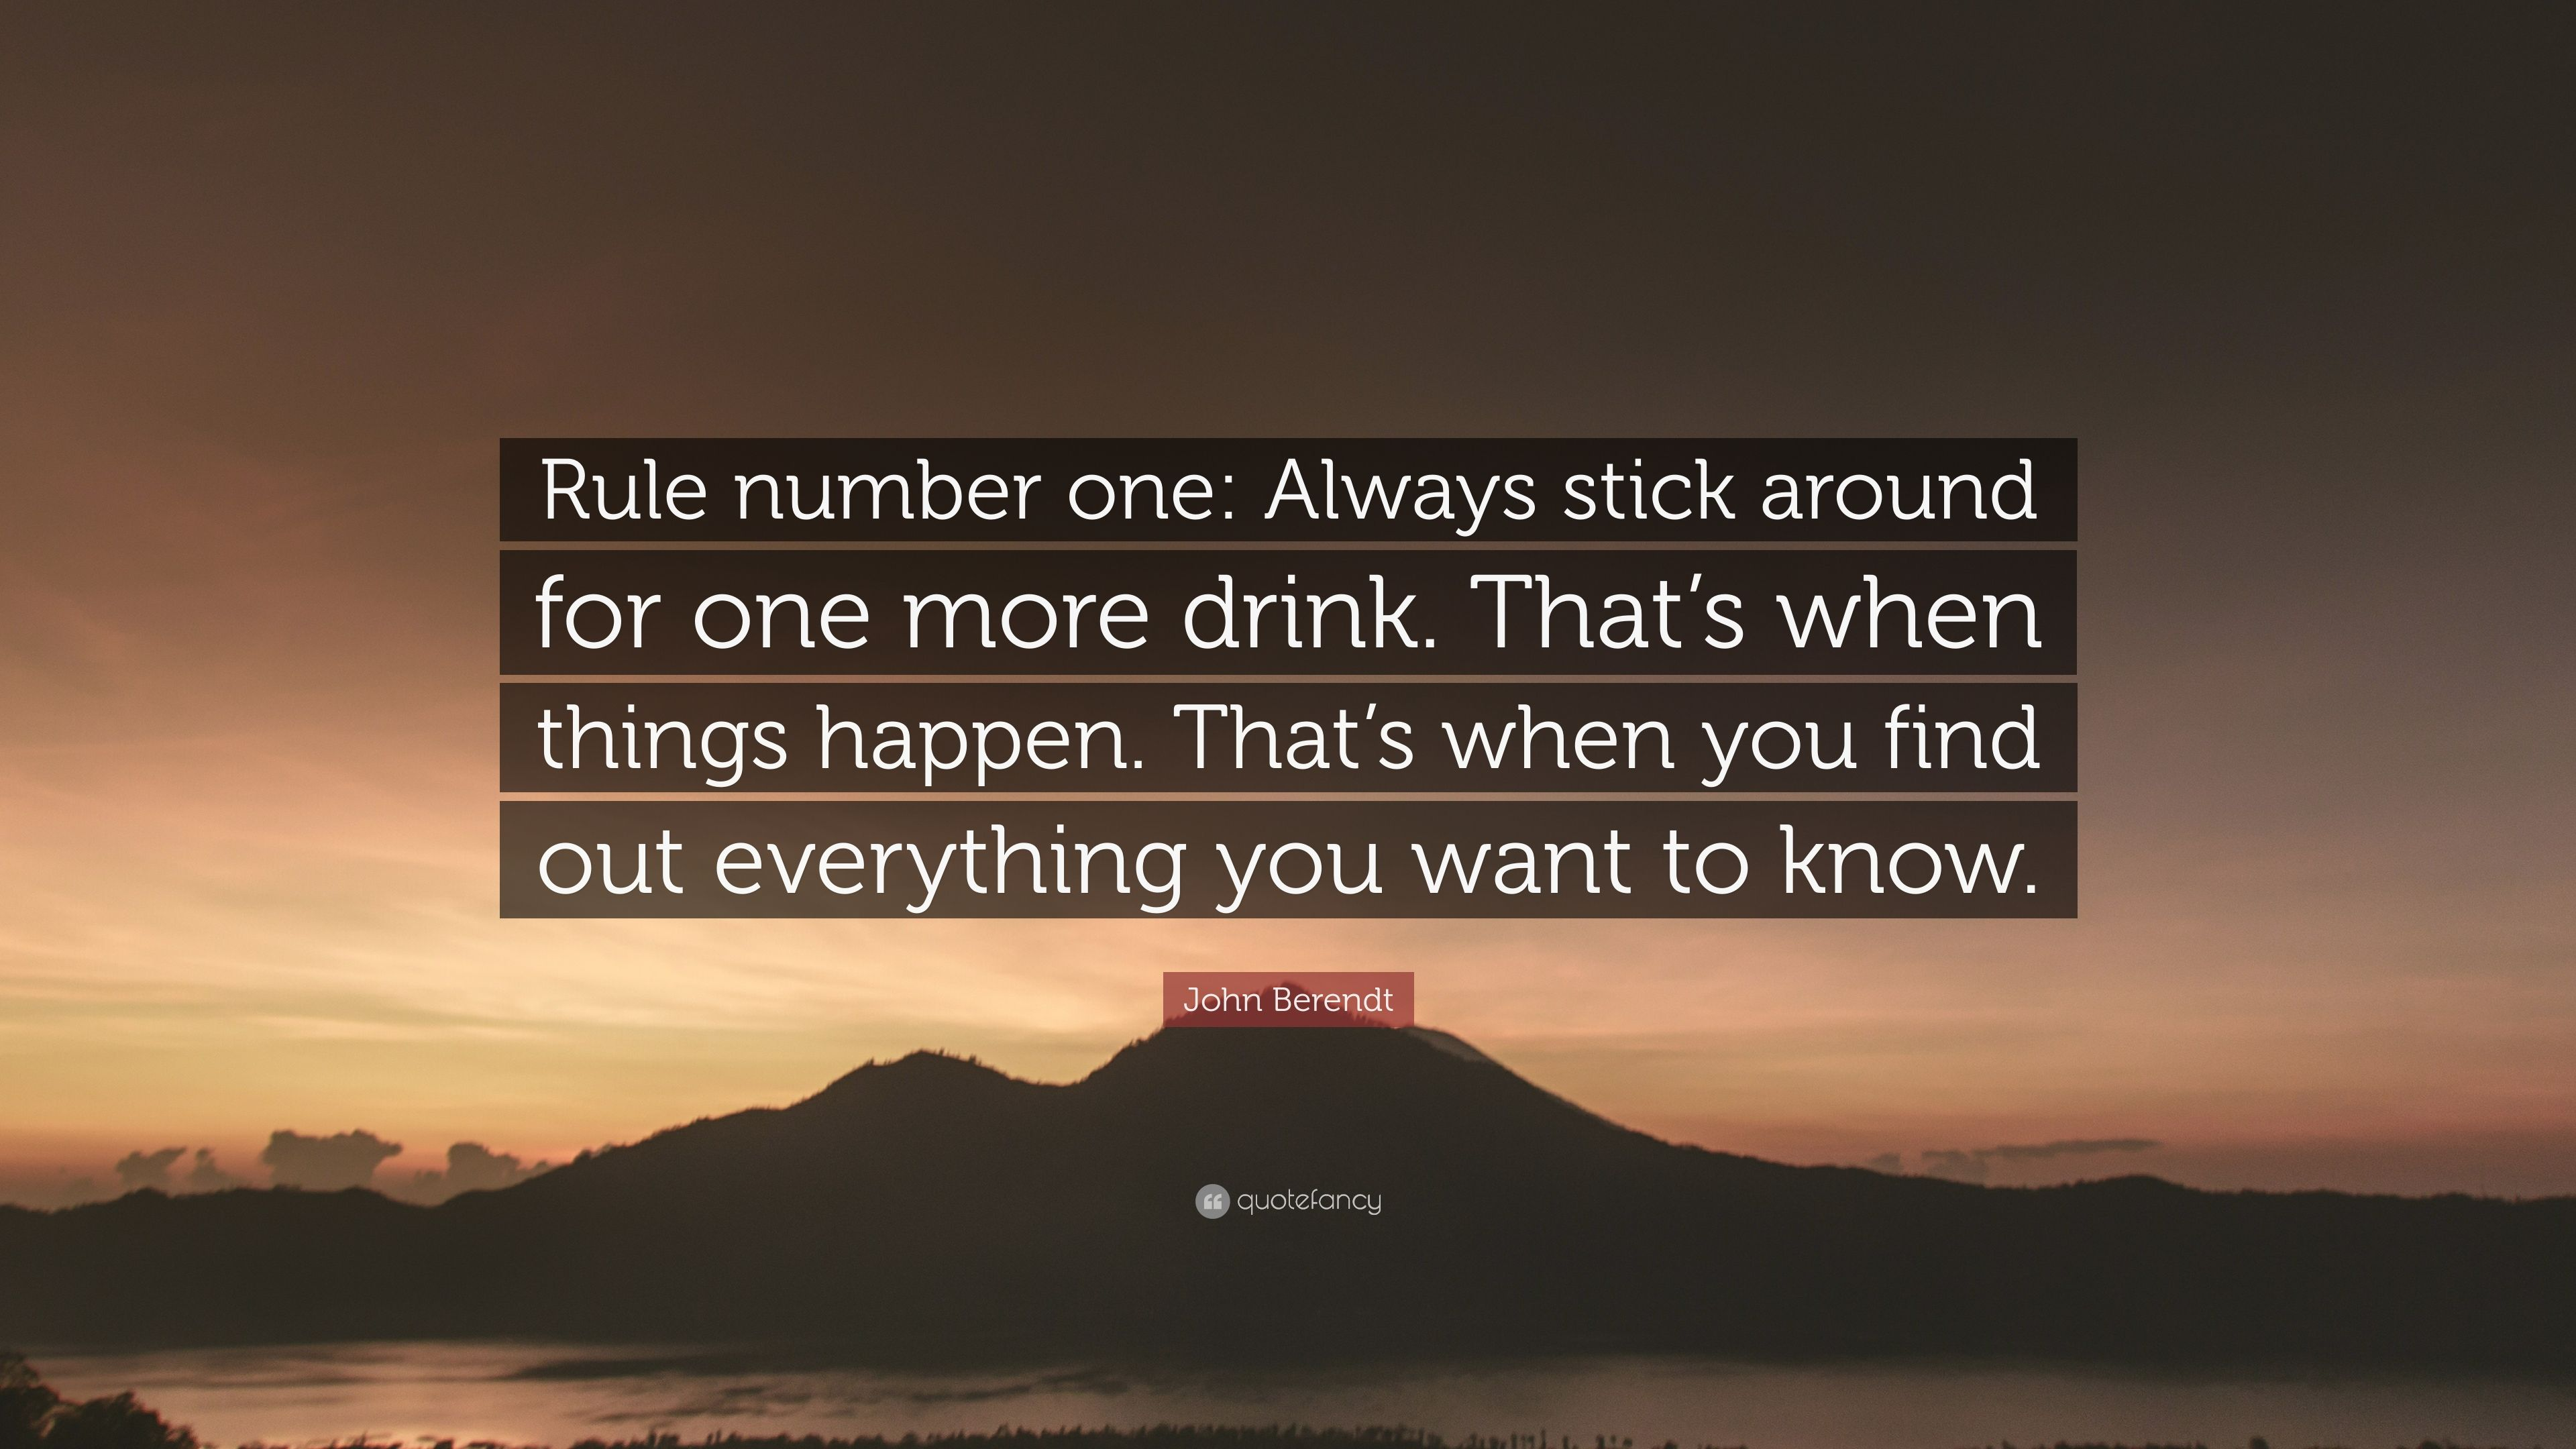 John Berendt Quote Rule Number One Always Stick Around For One